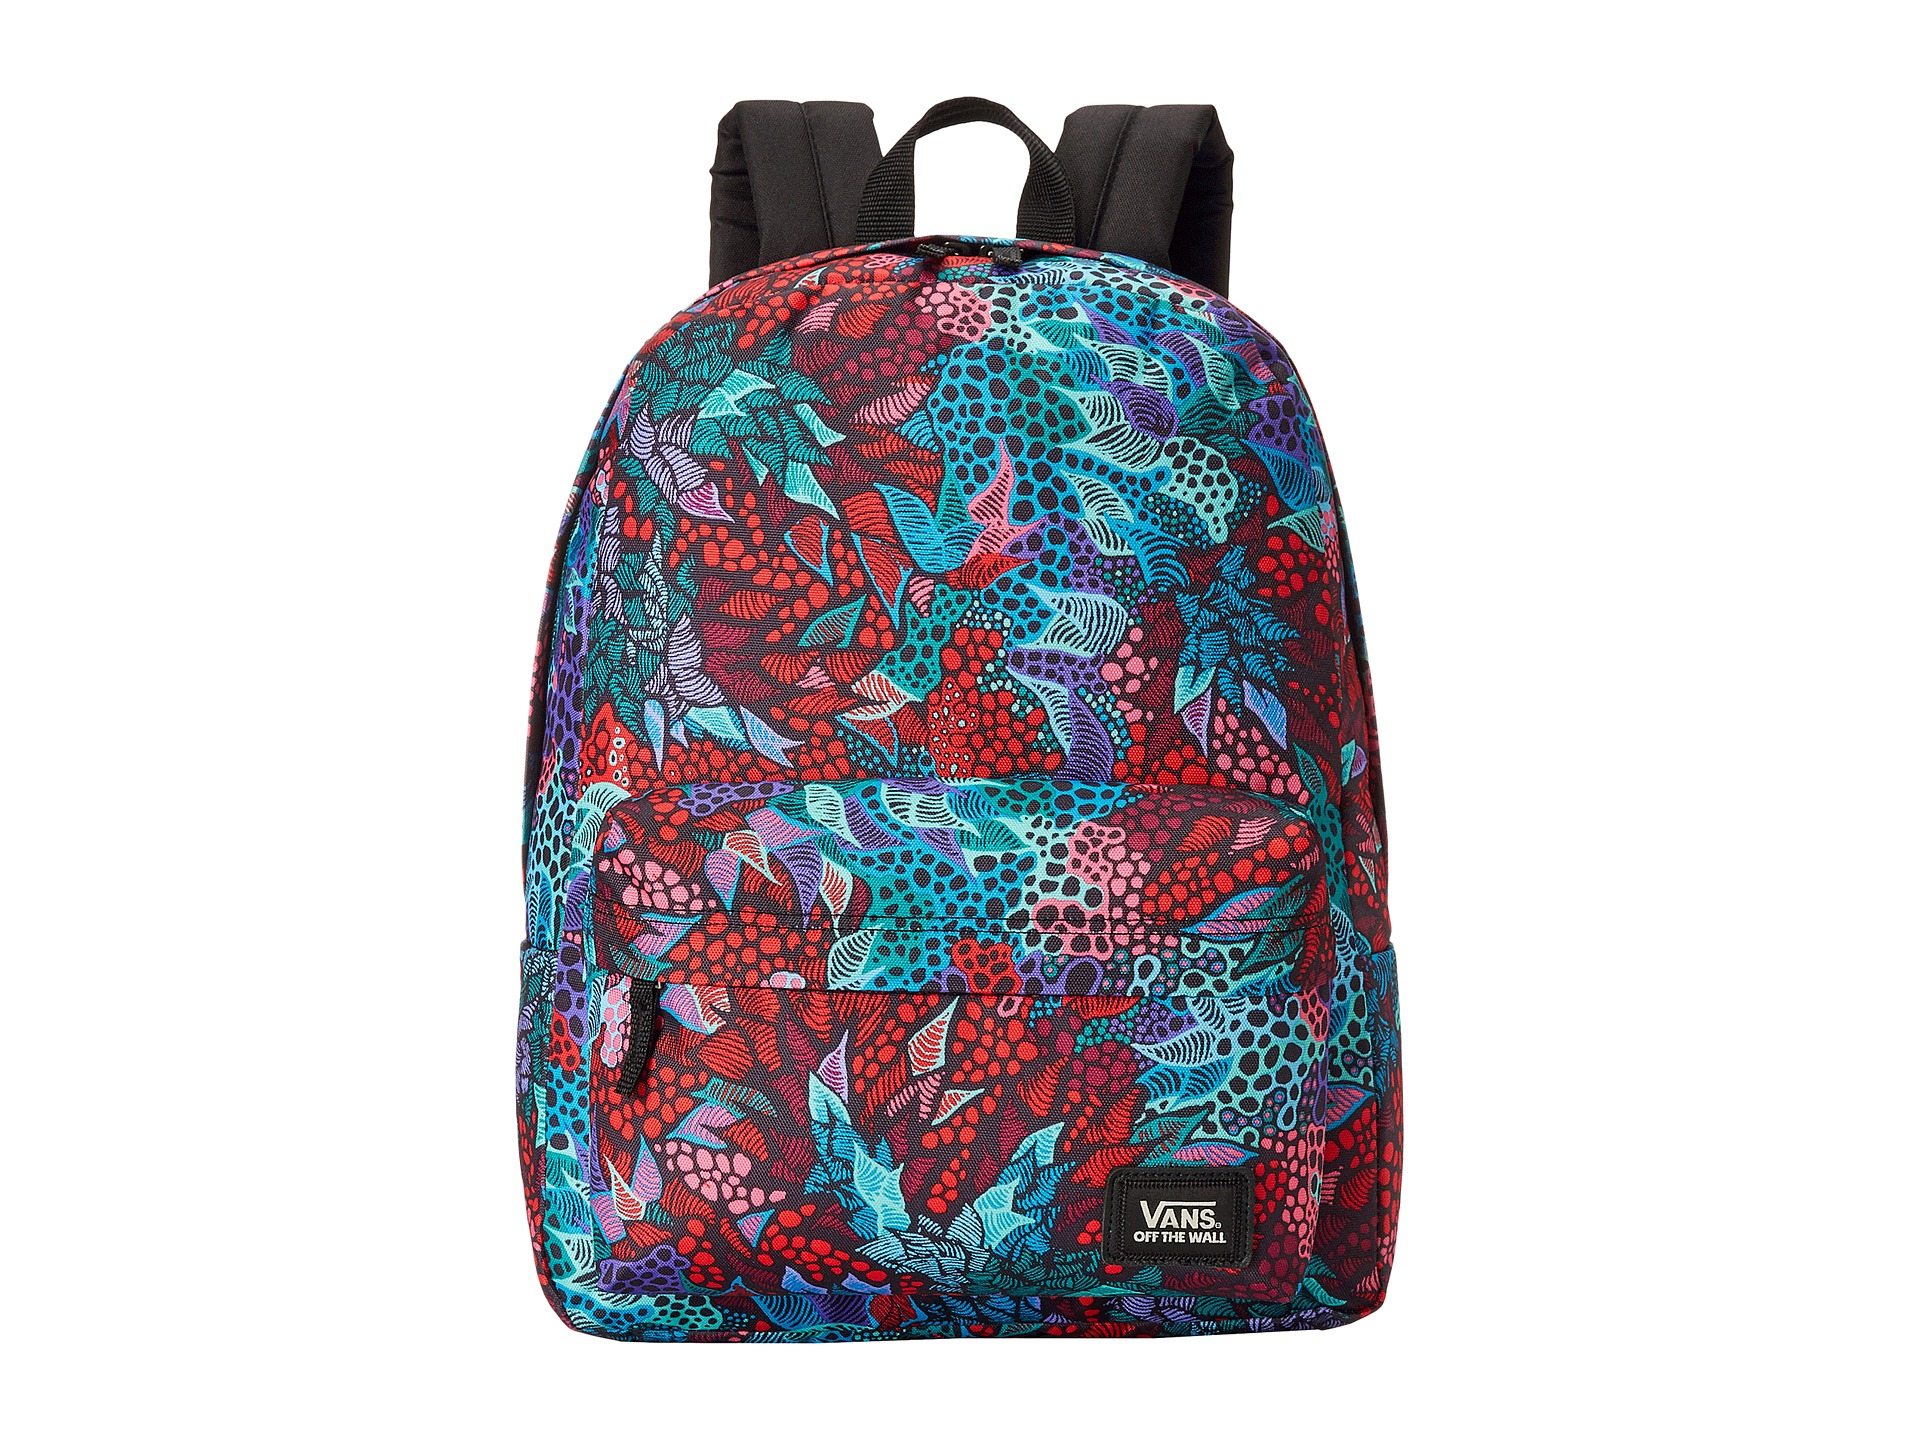 Vans Backpacks For Boys Vans Saulo Ibarra Backpack